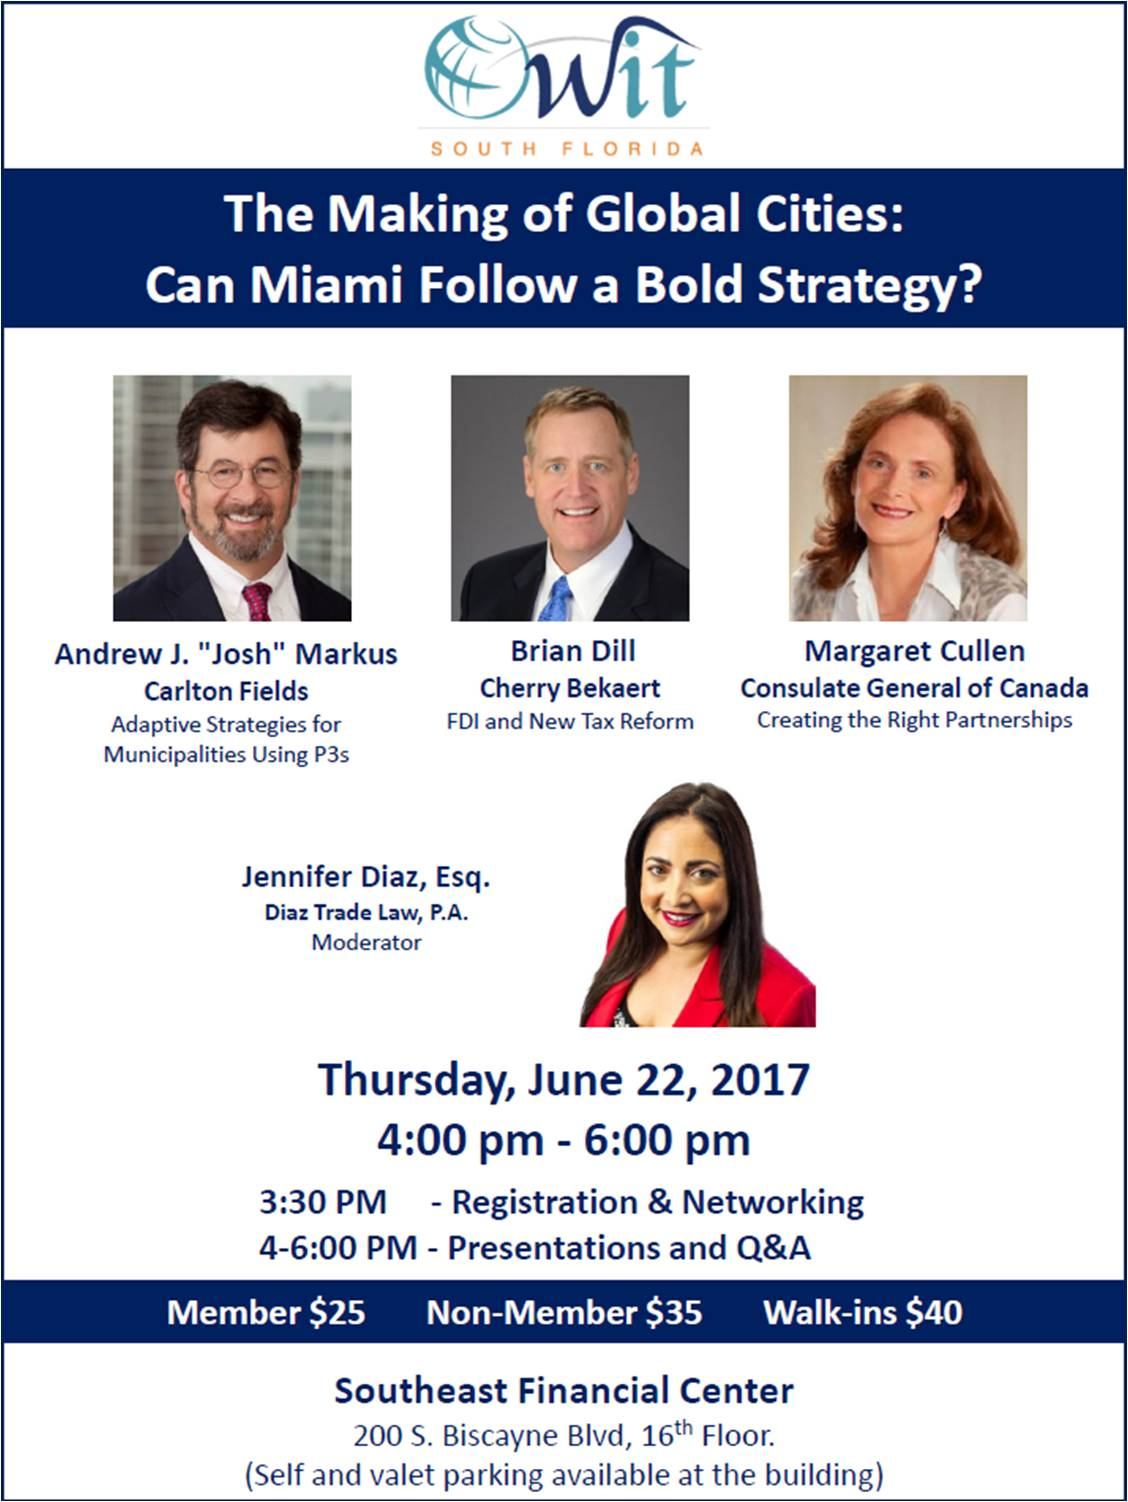 OWIT South Florida: The Making of Global Cities: Can Miami Follow a Bold Strategy?